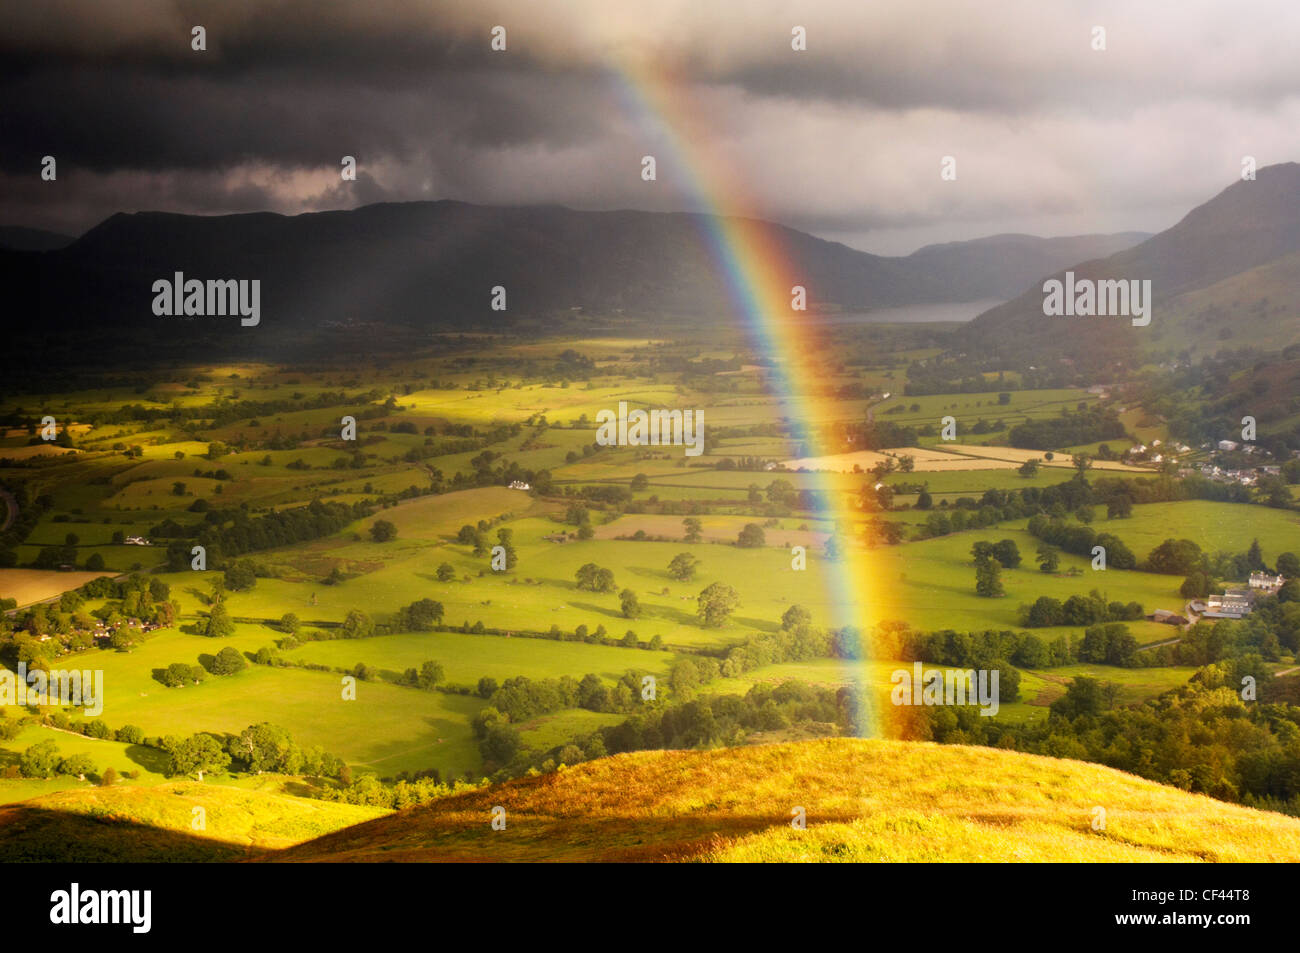 Dawn rainbow appears over Keswick and Bassenthwaite lake from Latrigg viewpoint. - Stock Image